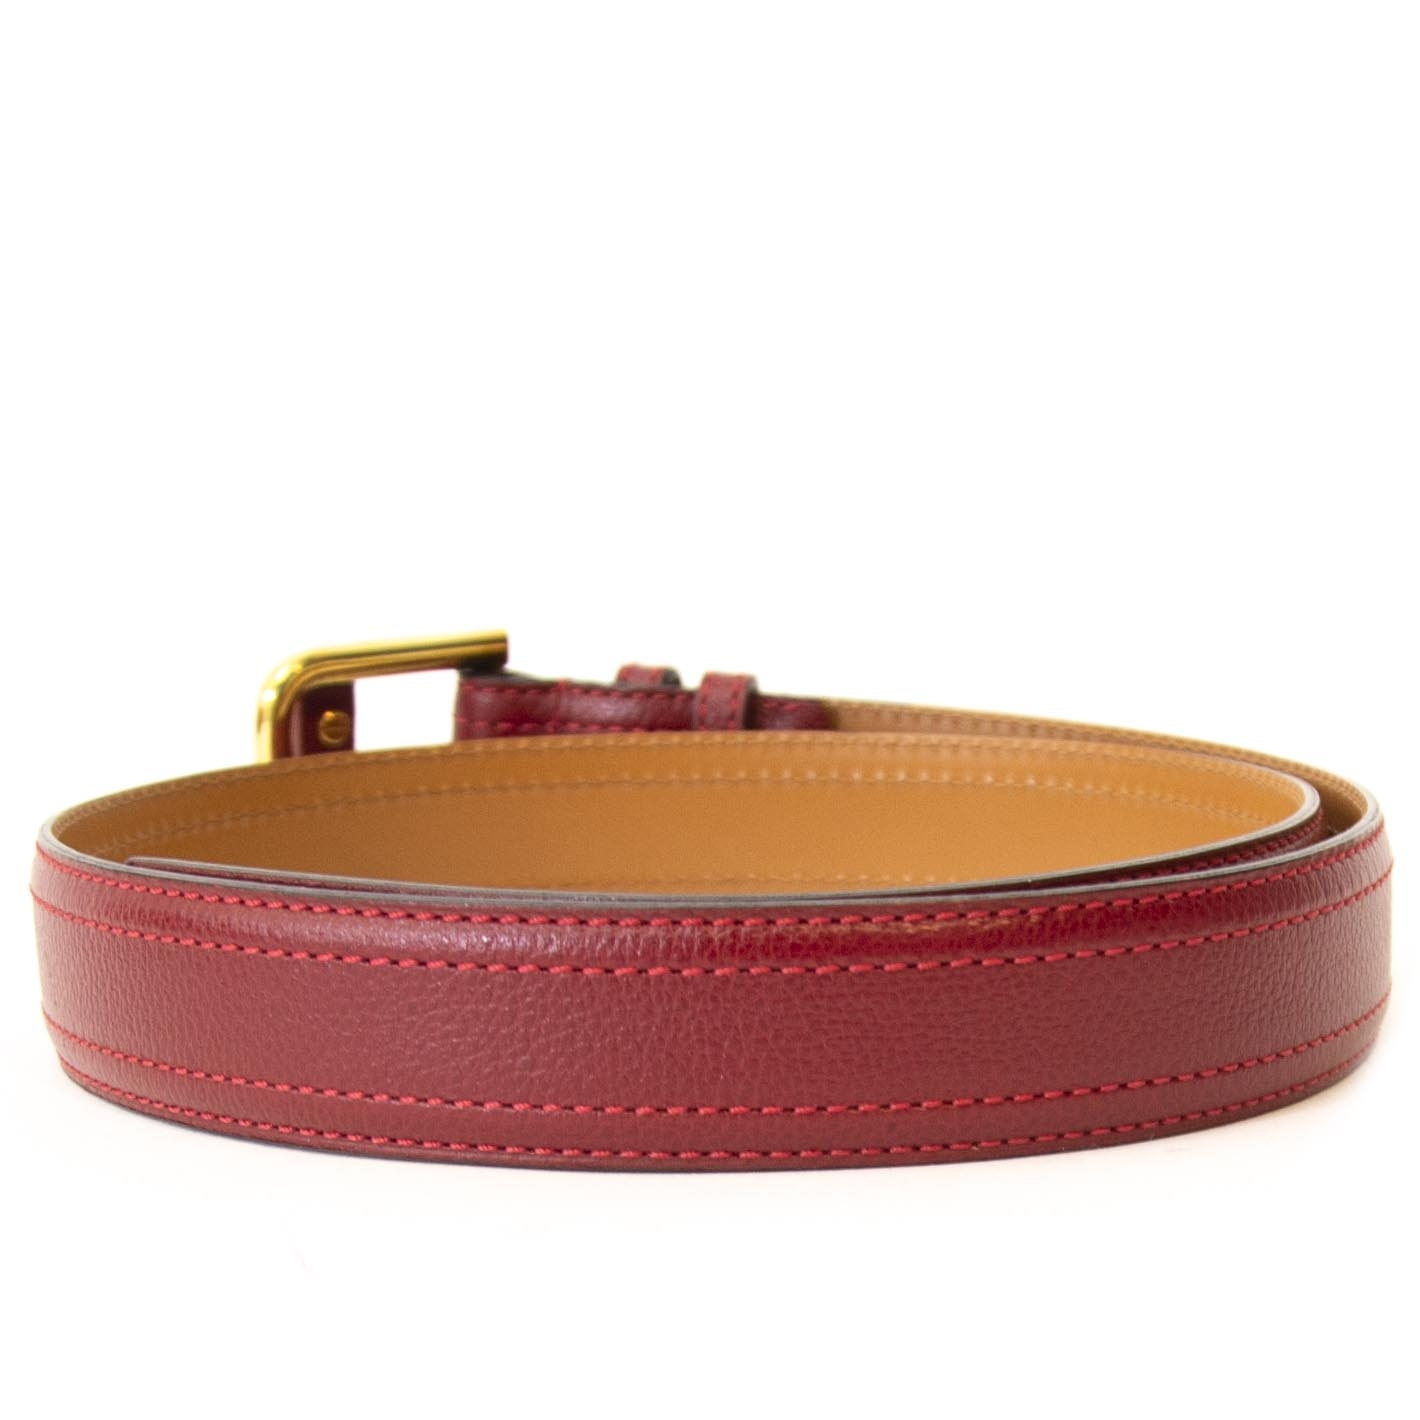 Delvaux Red Leather Belt - Size 85